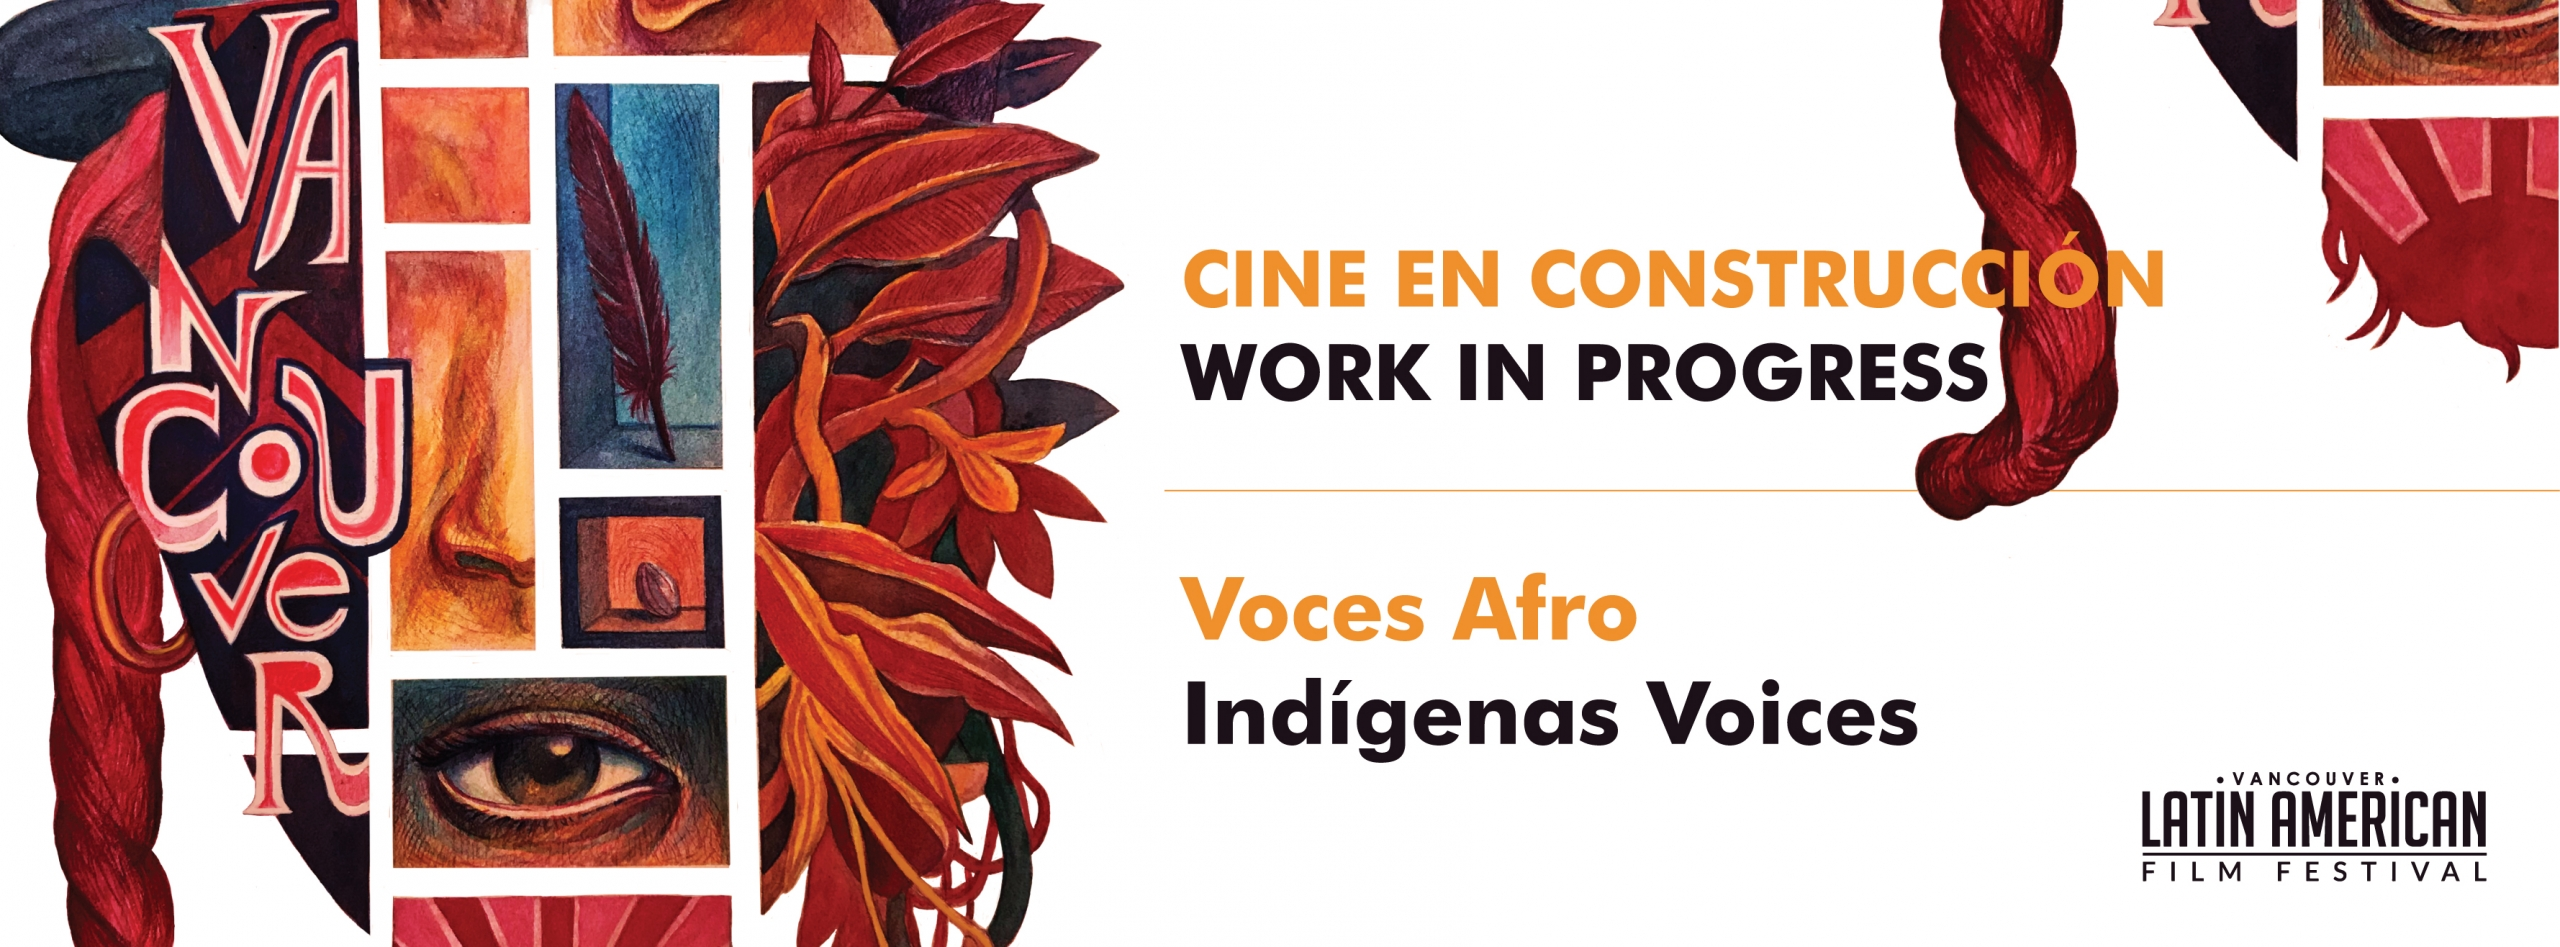 Cine en construcción | Work in Progress /Voces Afro Indígenas Voices